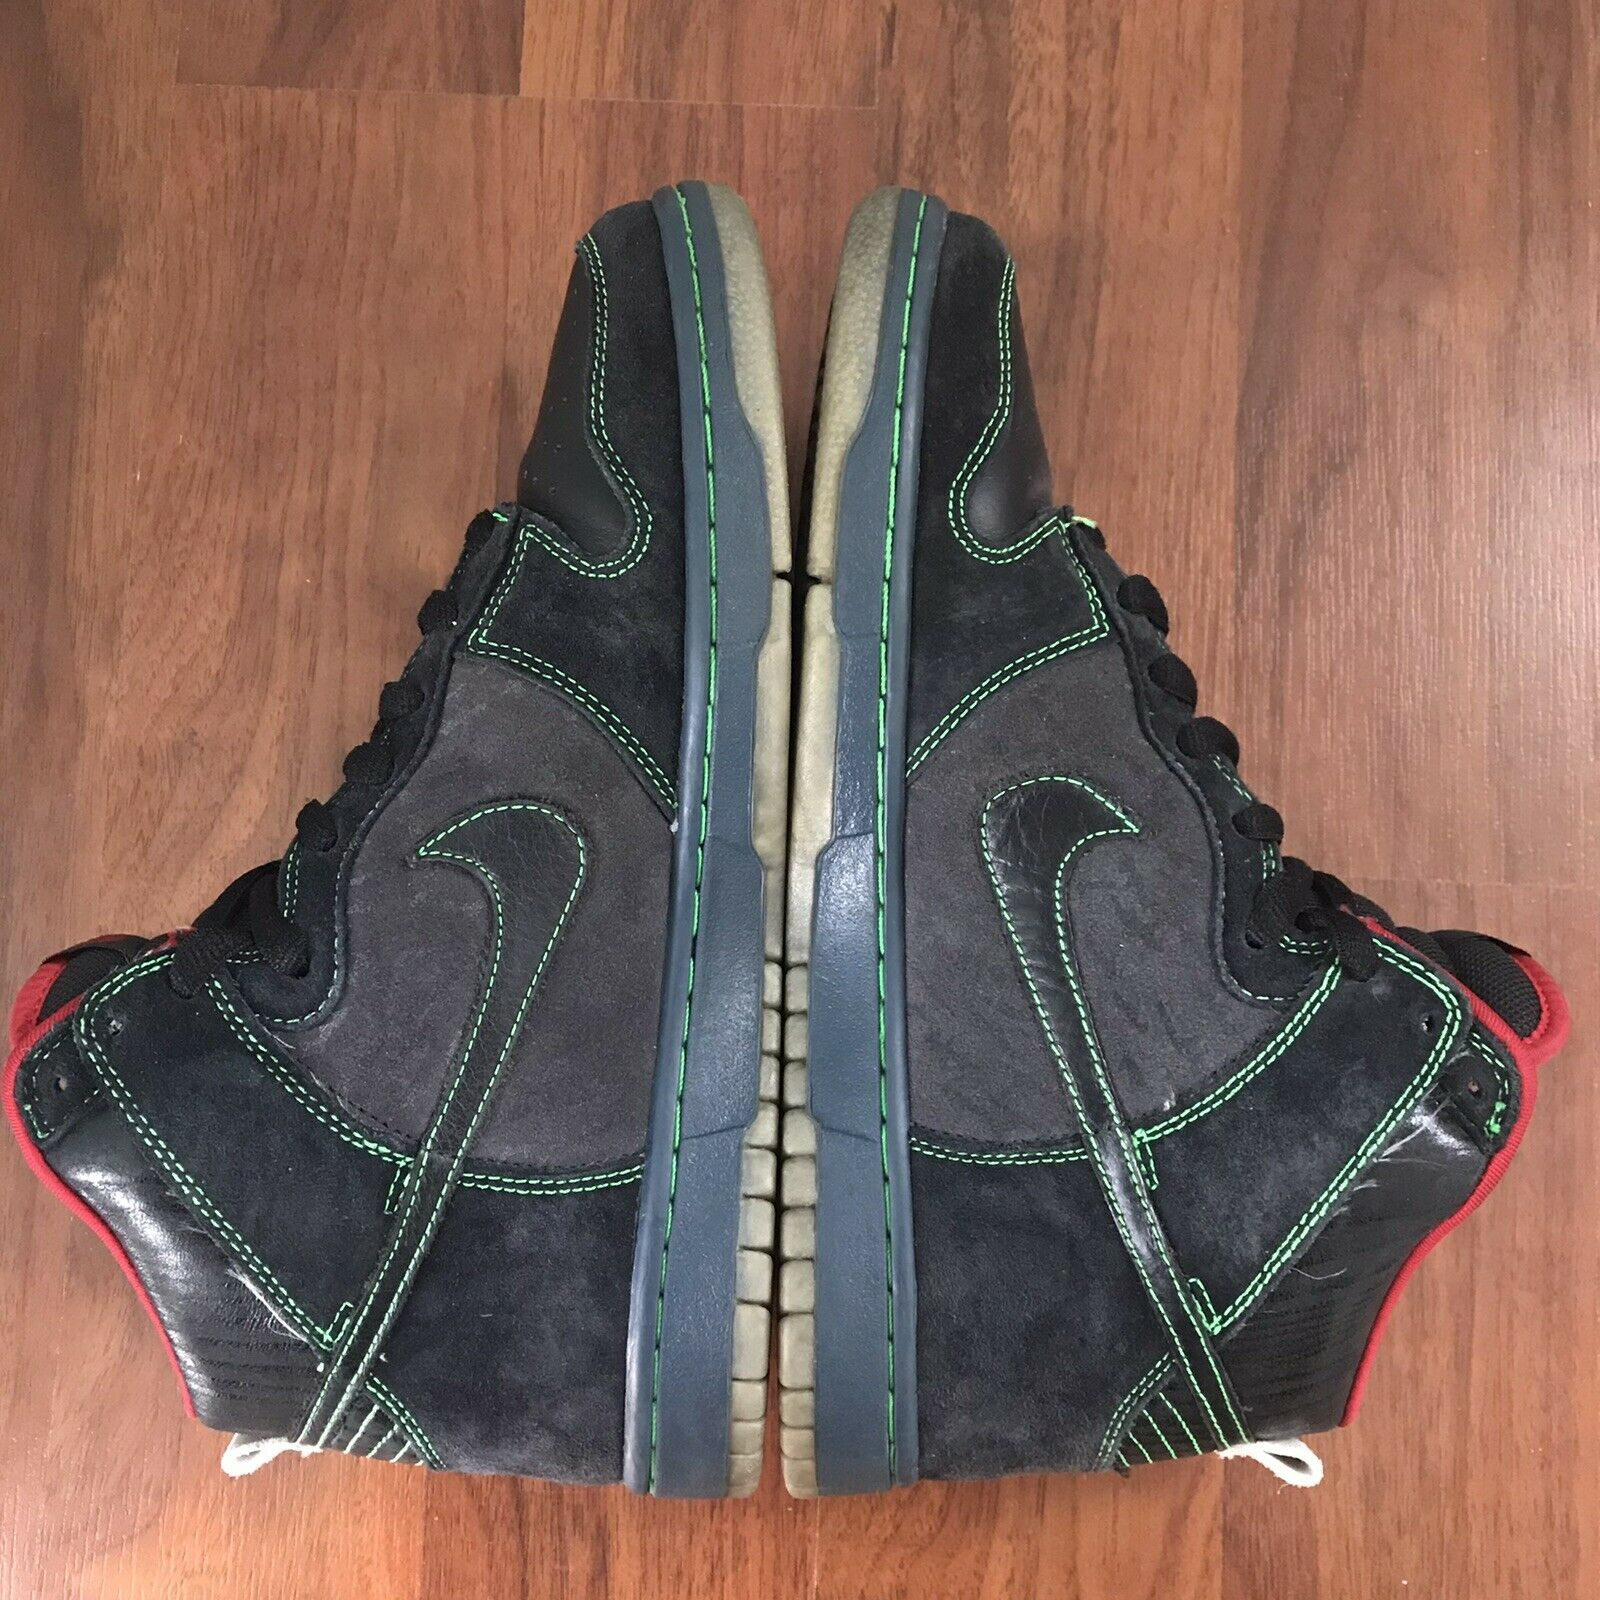 Nike SB Dunk High Twin Peaks Size 9.5 Night Owl - image 4